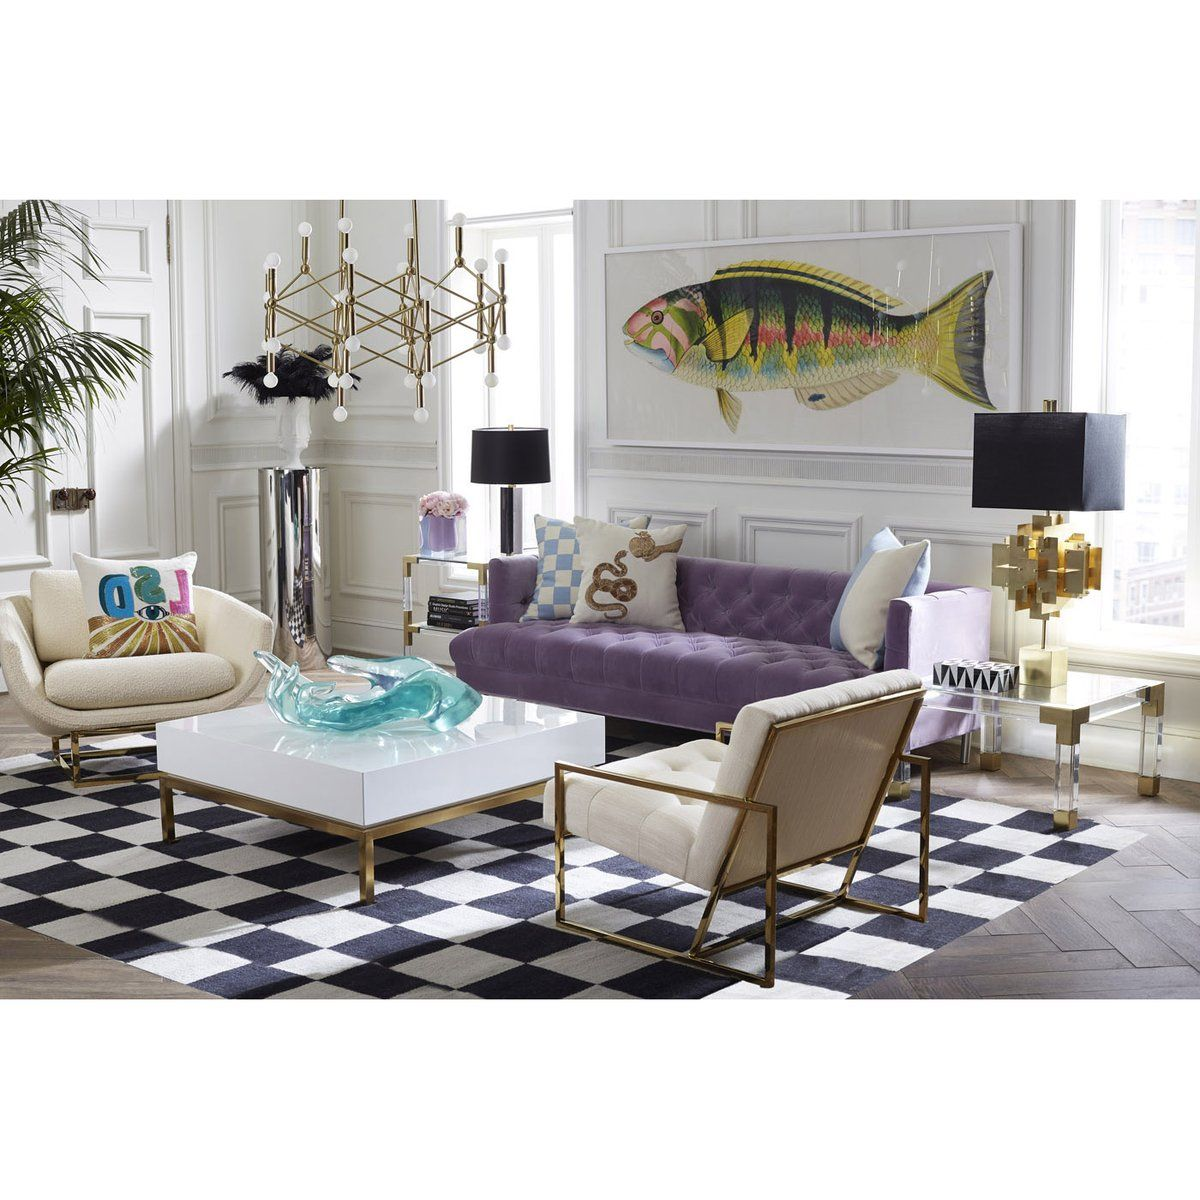 Bennet Fish 3 In 2020 Luxury Chairs Home Decor Furni